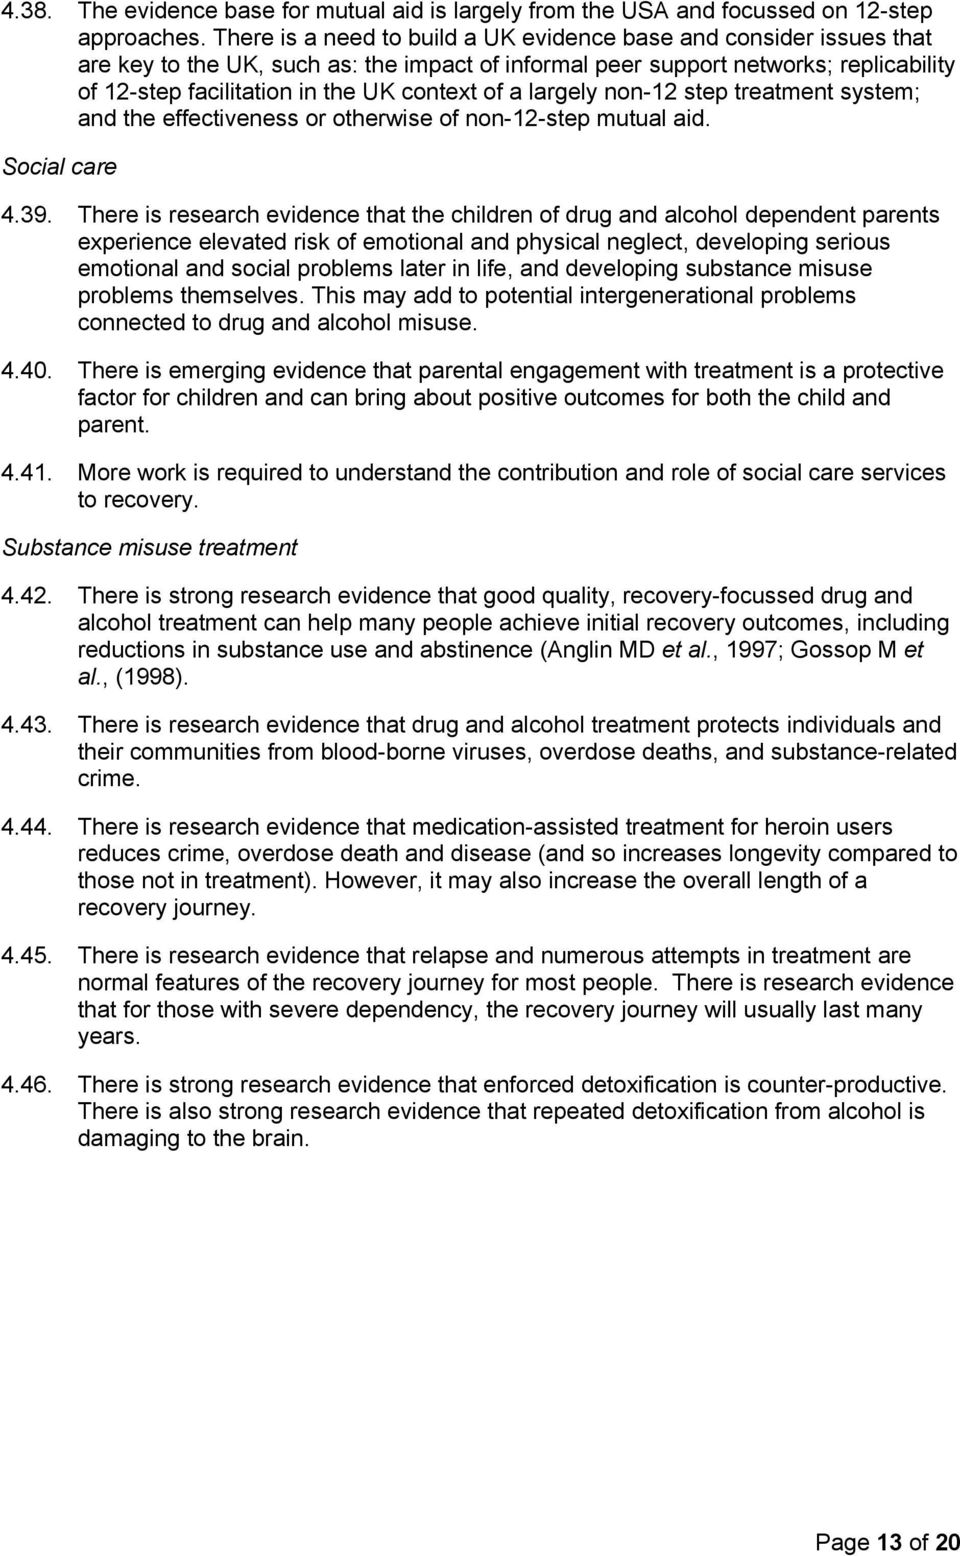 of a largely non-12 step treatment system; and the effectiveness or otherwise of non-12-step mutual aid. Social care 4.39.